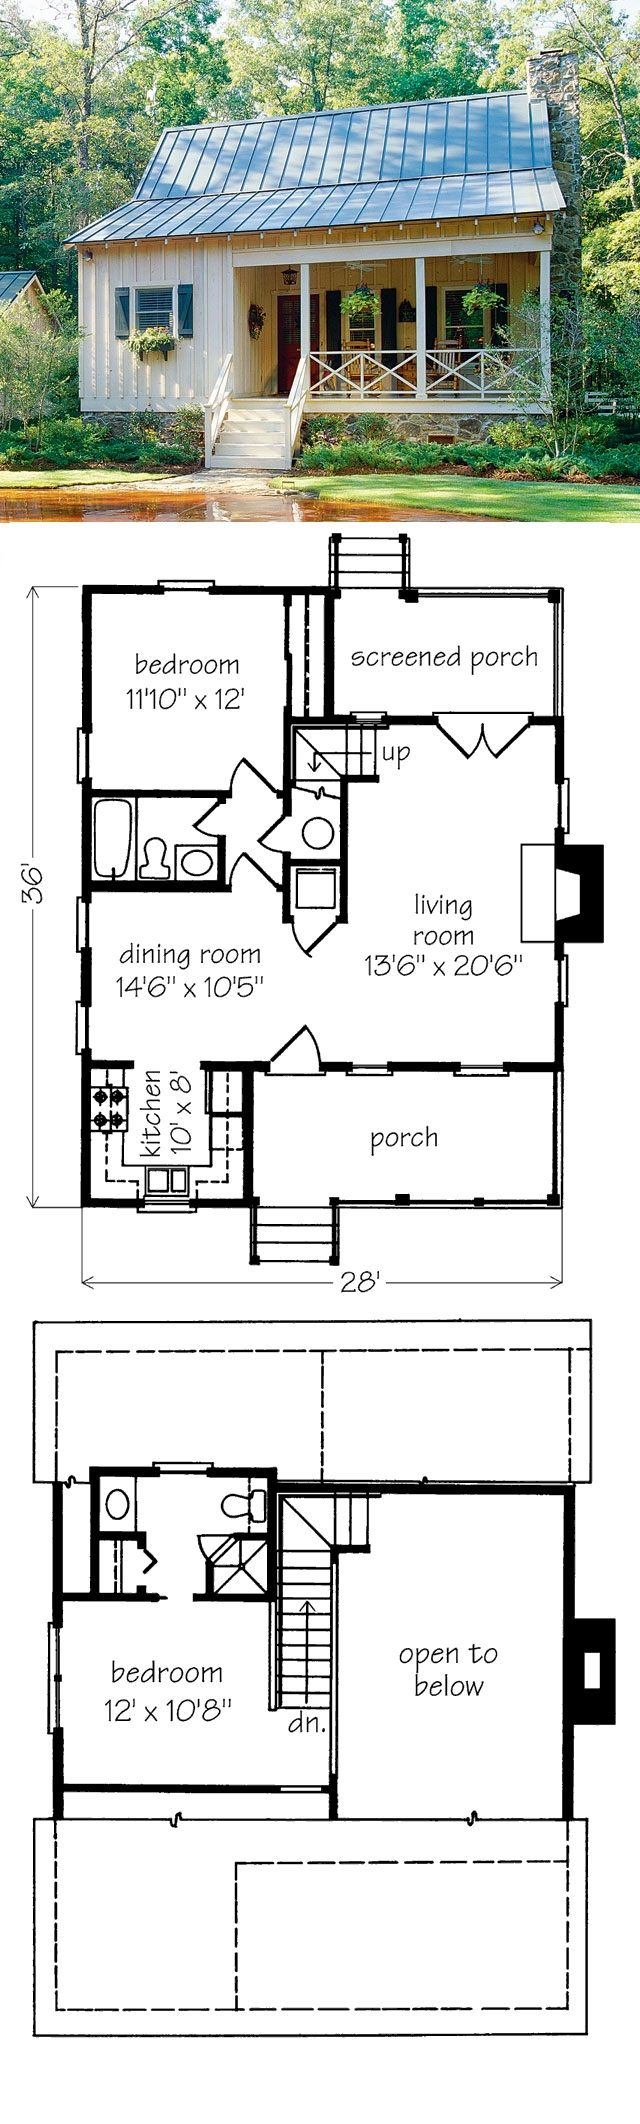 62 best house plans images on pinterest vintage houses house